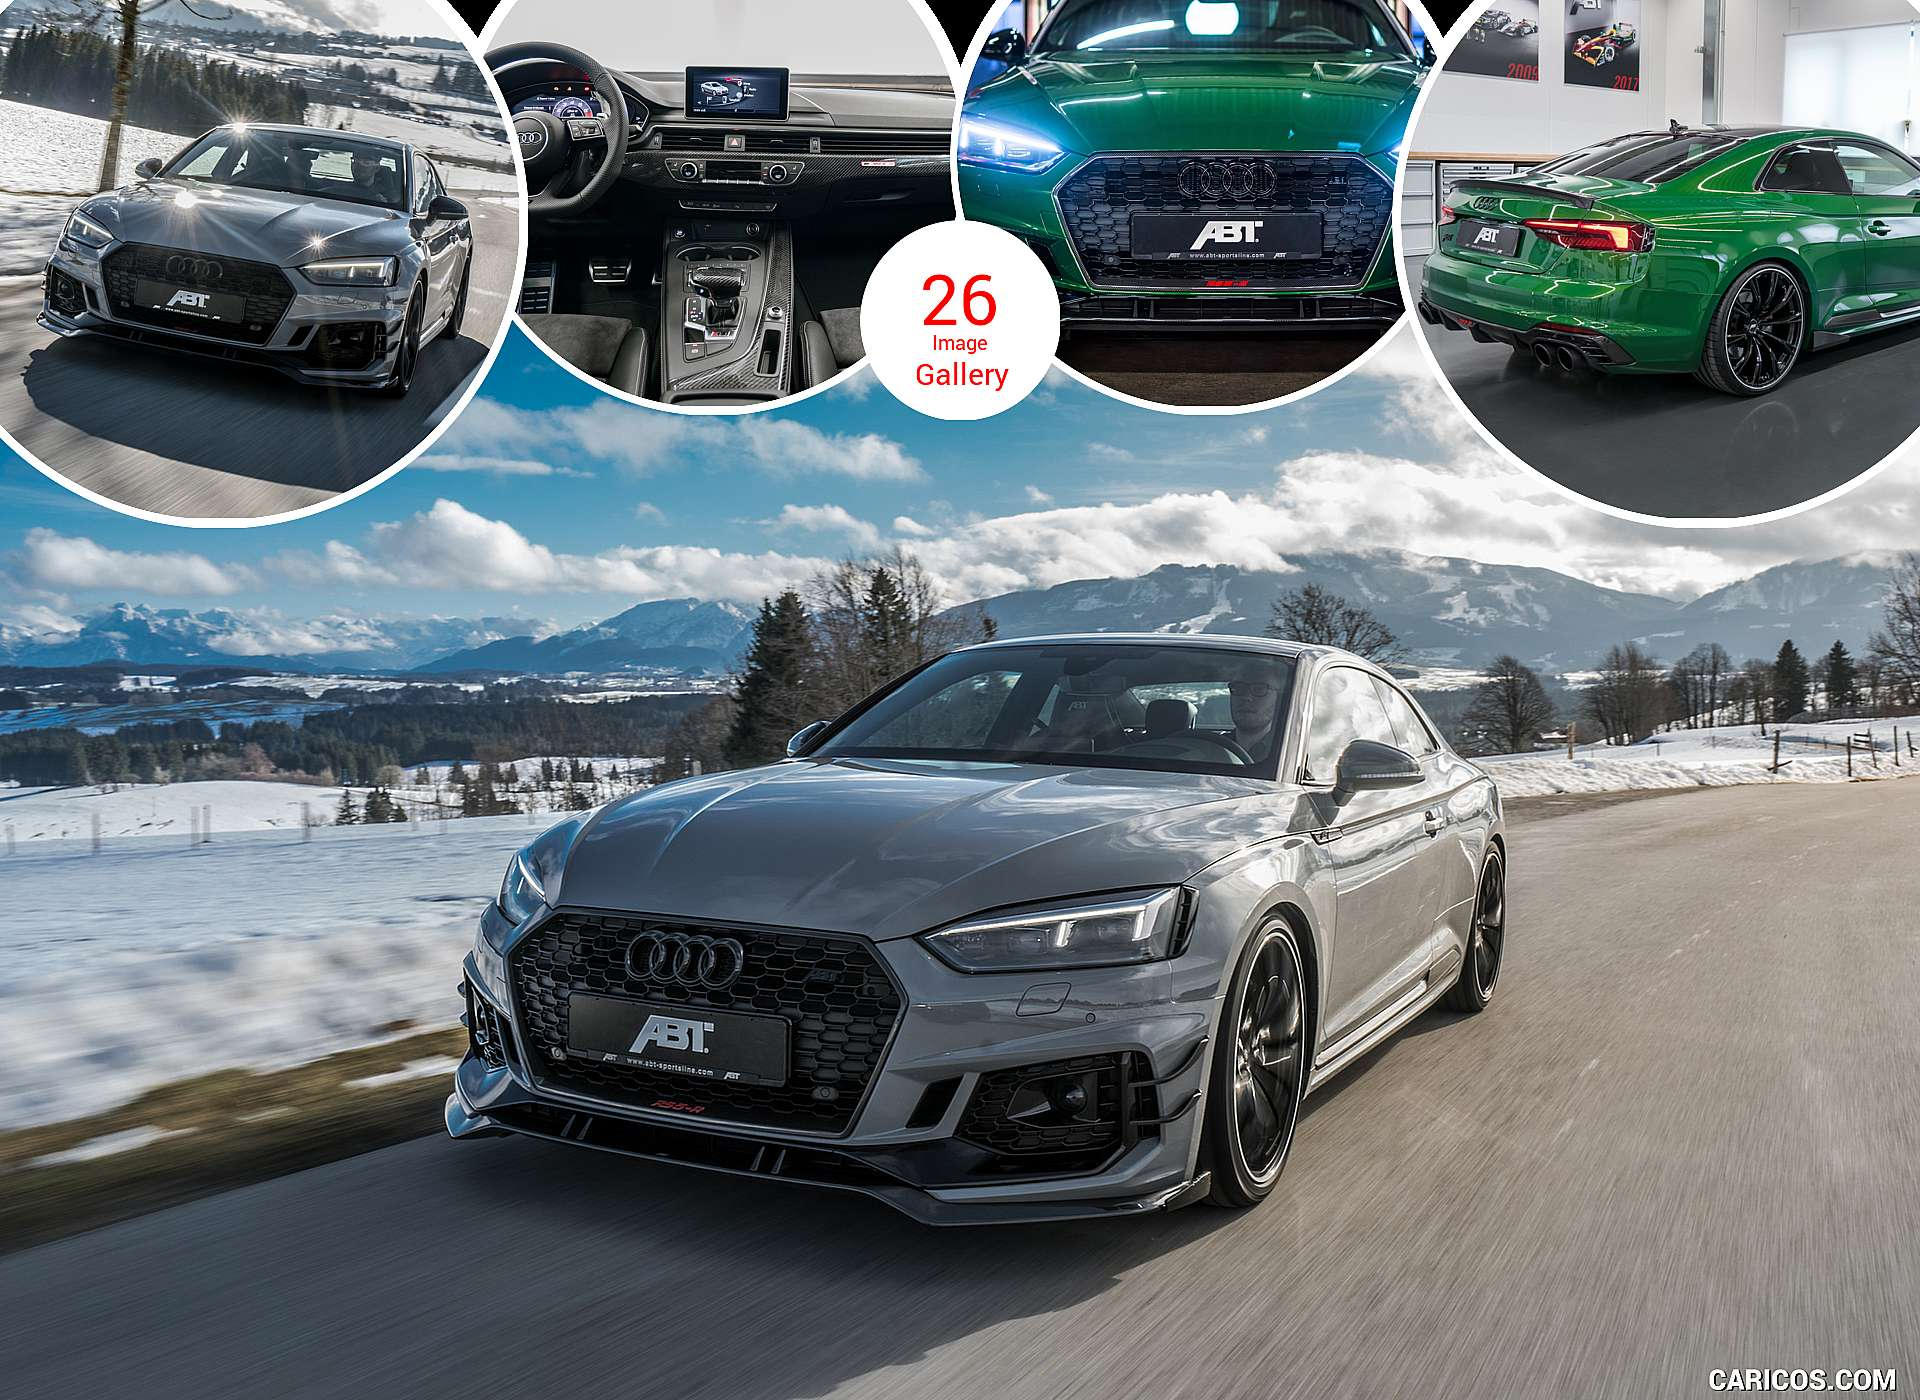 2018 ABT RS5-R based on Audi RS5